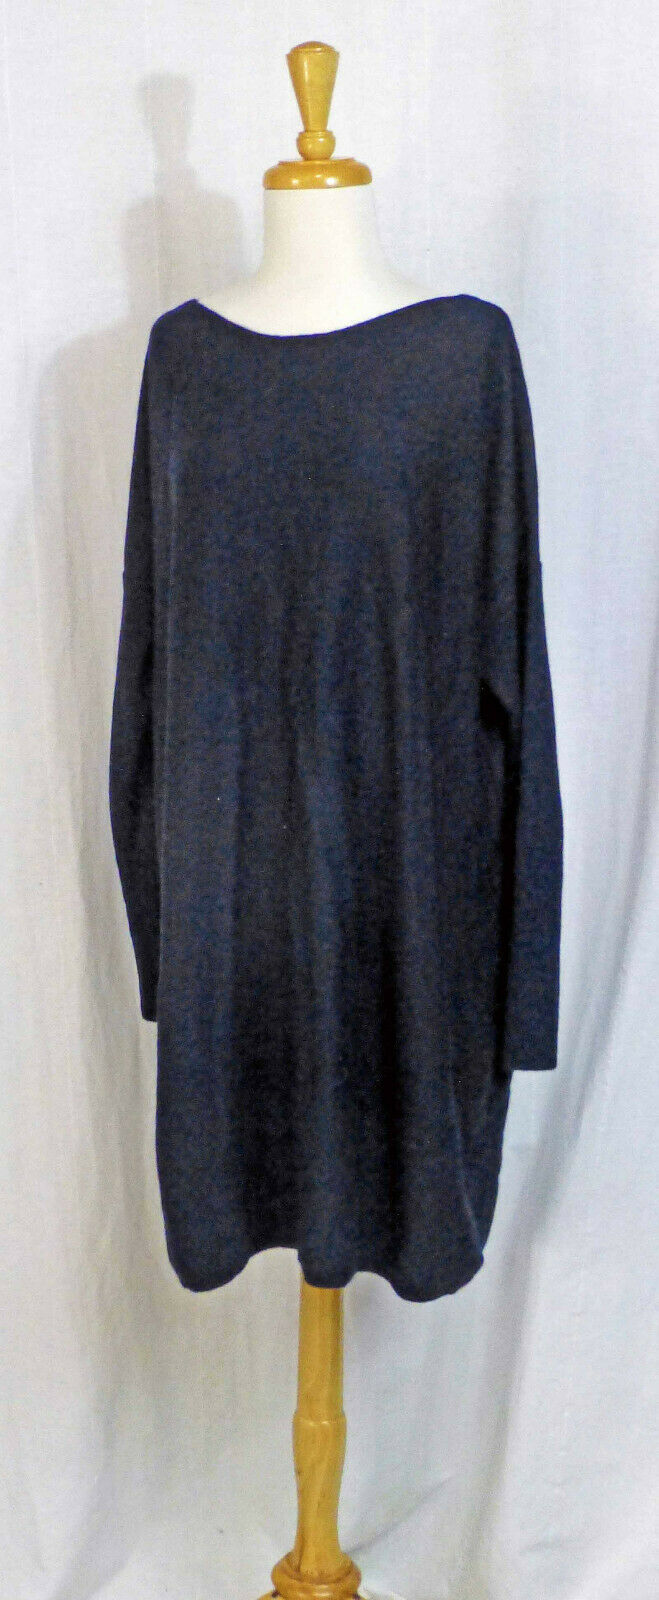 EILEEN FISHER INK Blau-BLK WOOL KNIT L S STRAIGHT TUNIC SWEATER DRESS L LN LUXE